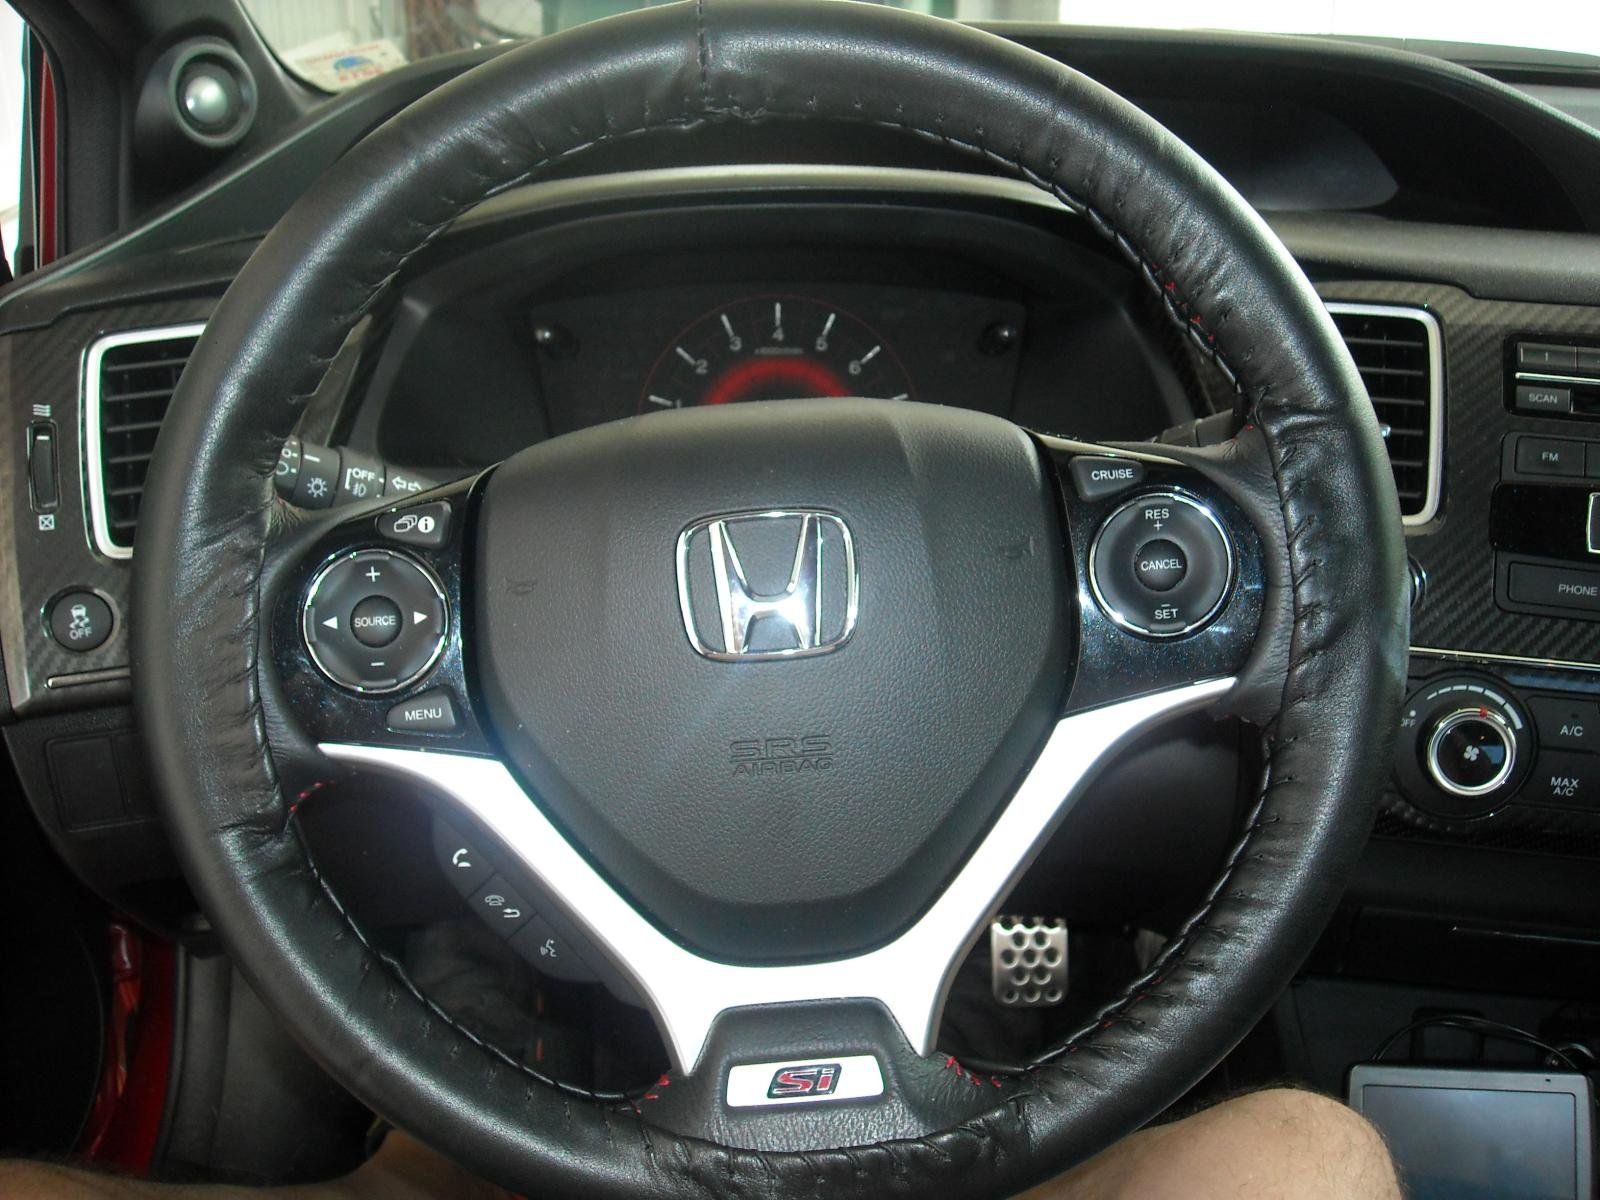 Wheelskins leather steering wheel cover.-dscn1246%5B1%5D.jpg